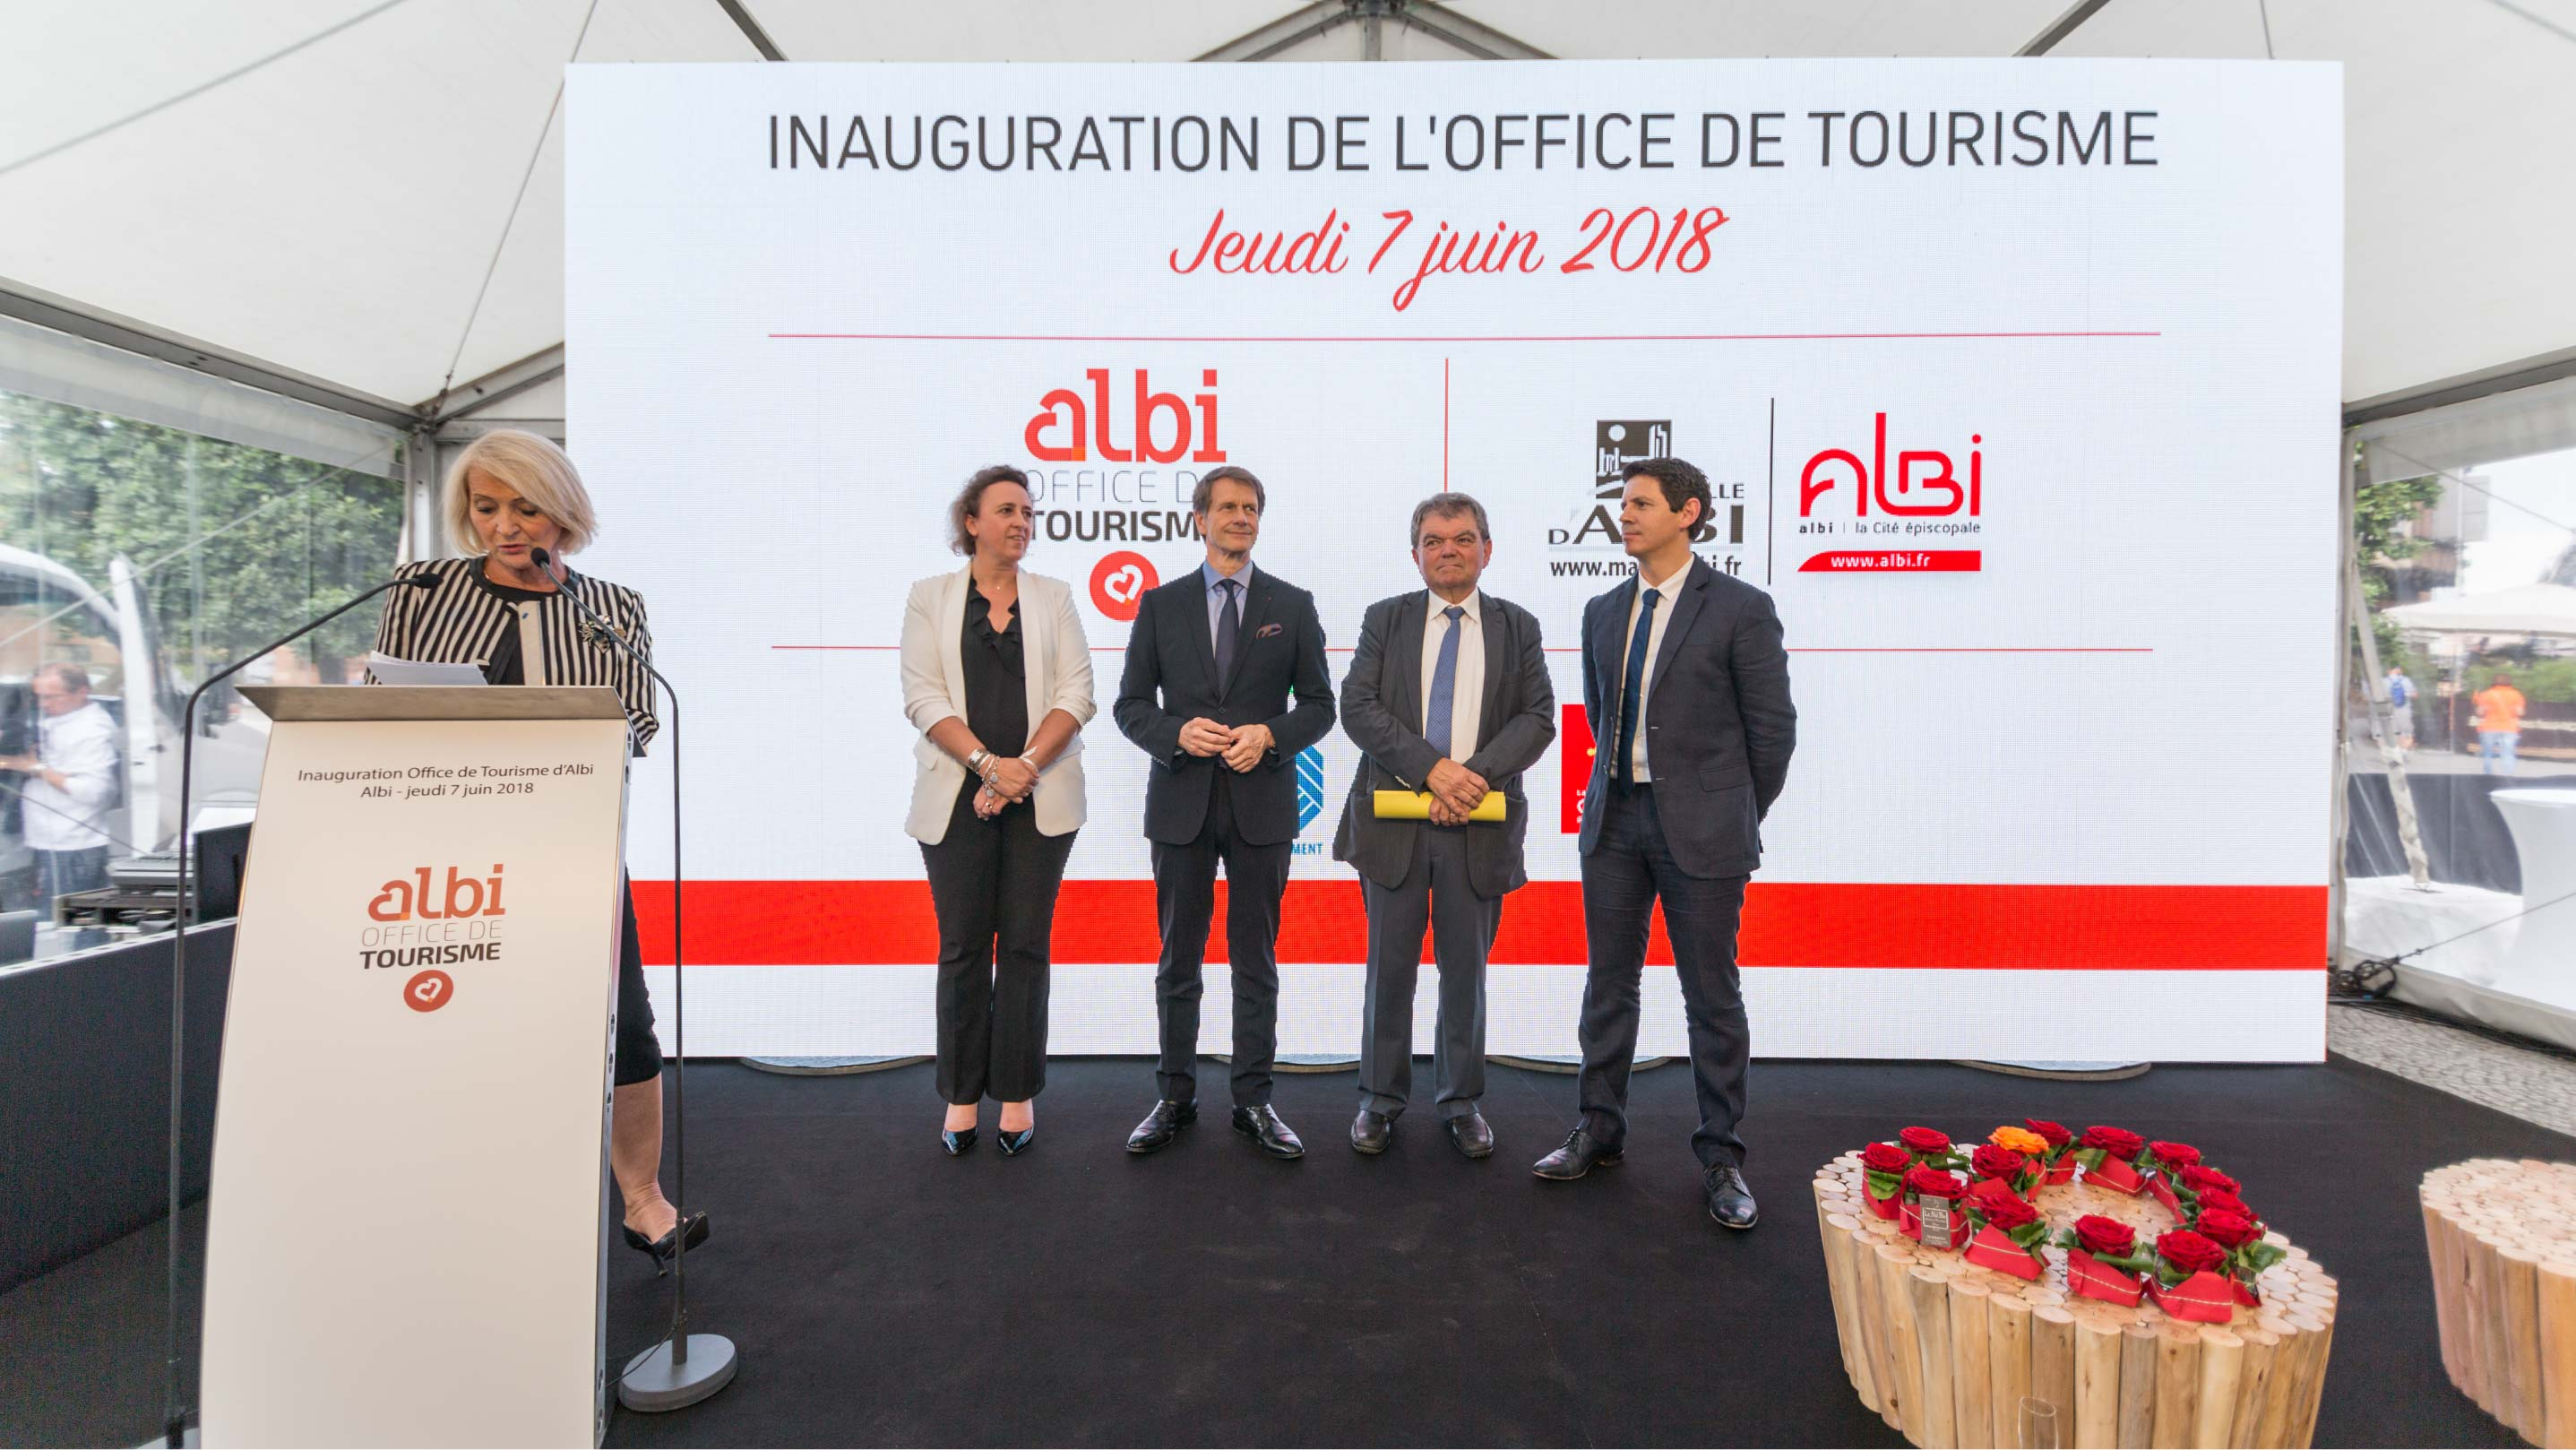 Inauguration Office de Tourisme d'Albi